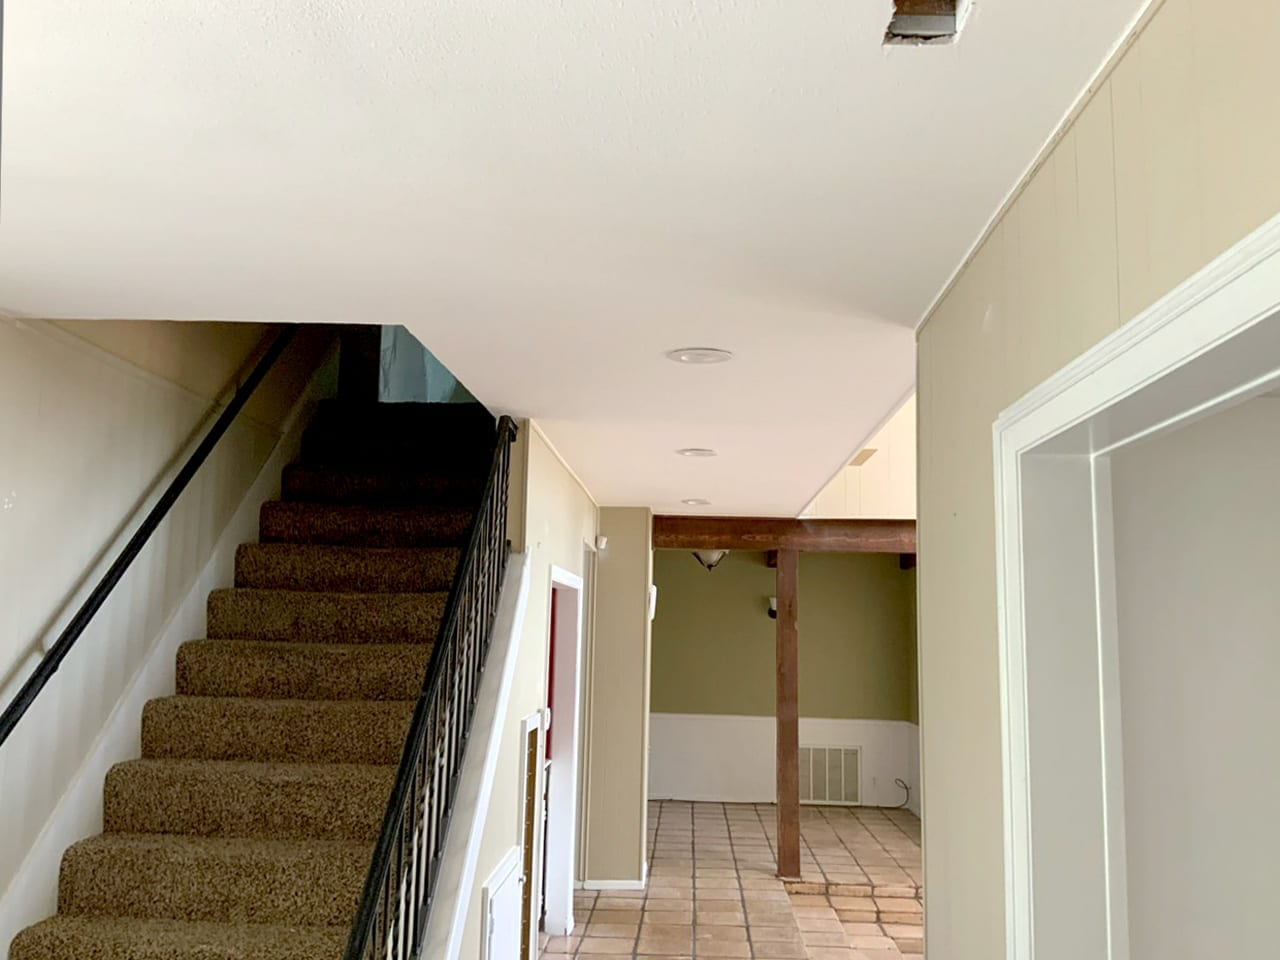 hallway and staircase after popcorn removal